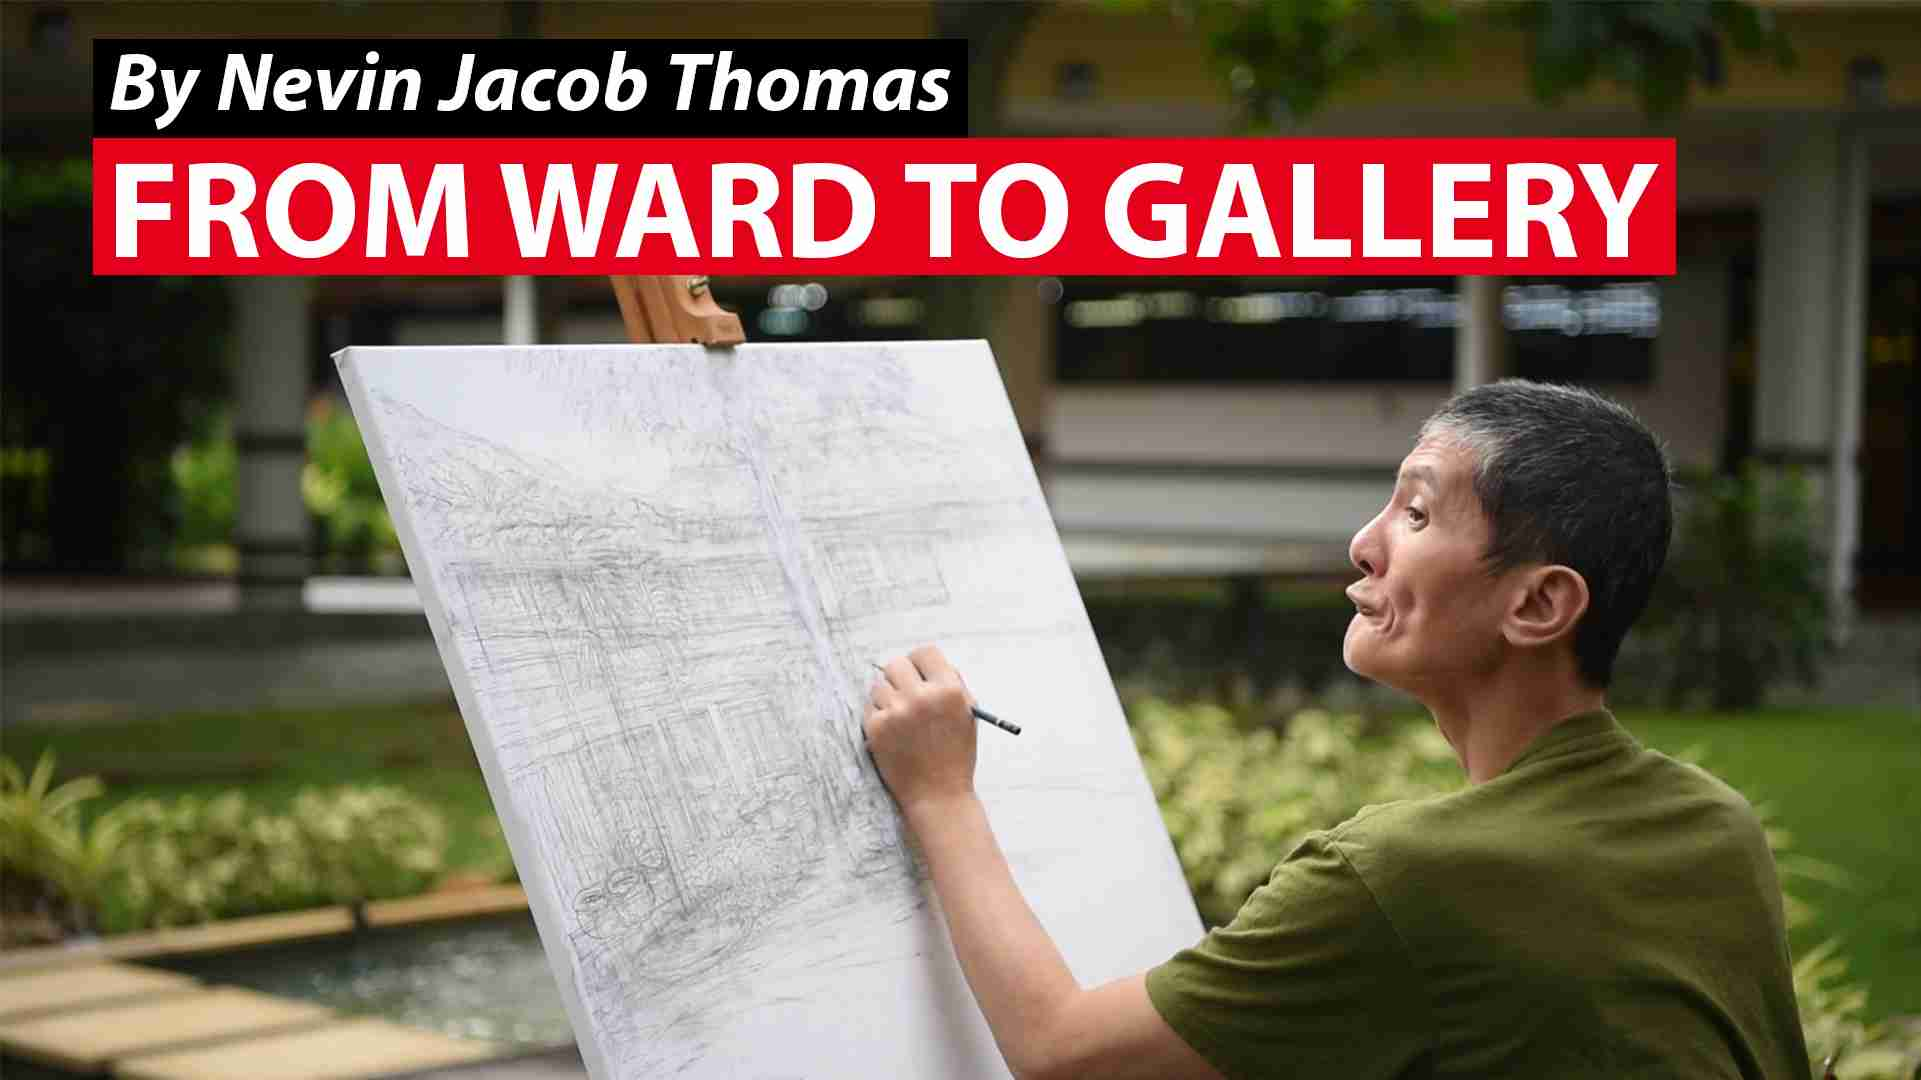 From ward to gallery: The artist with schizophrenia